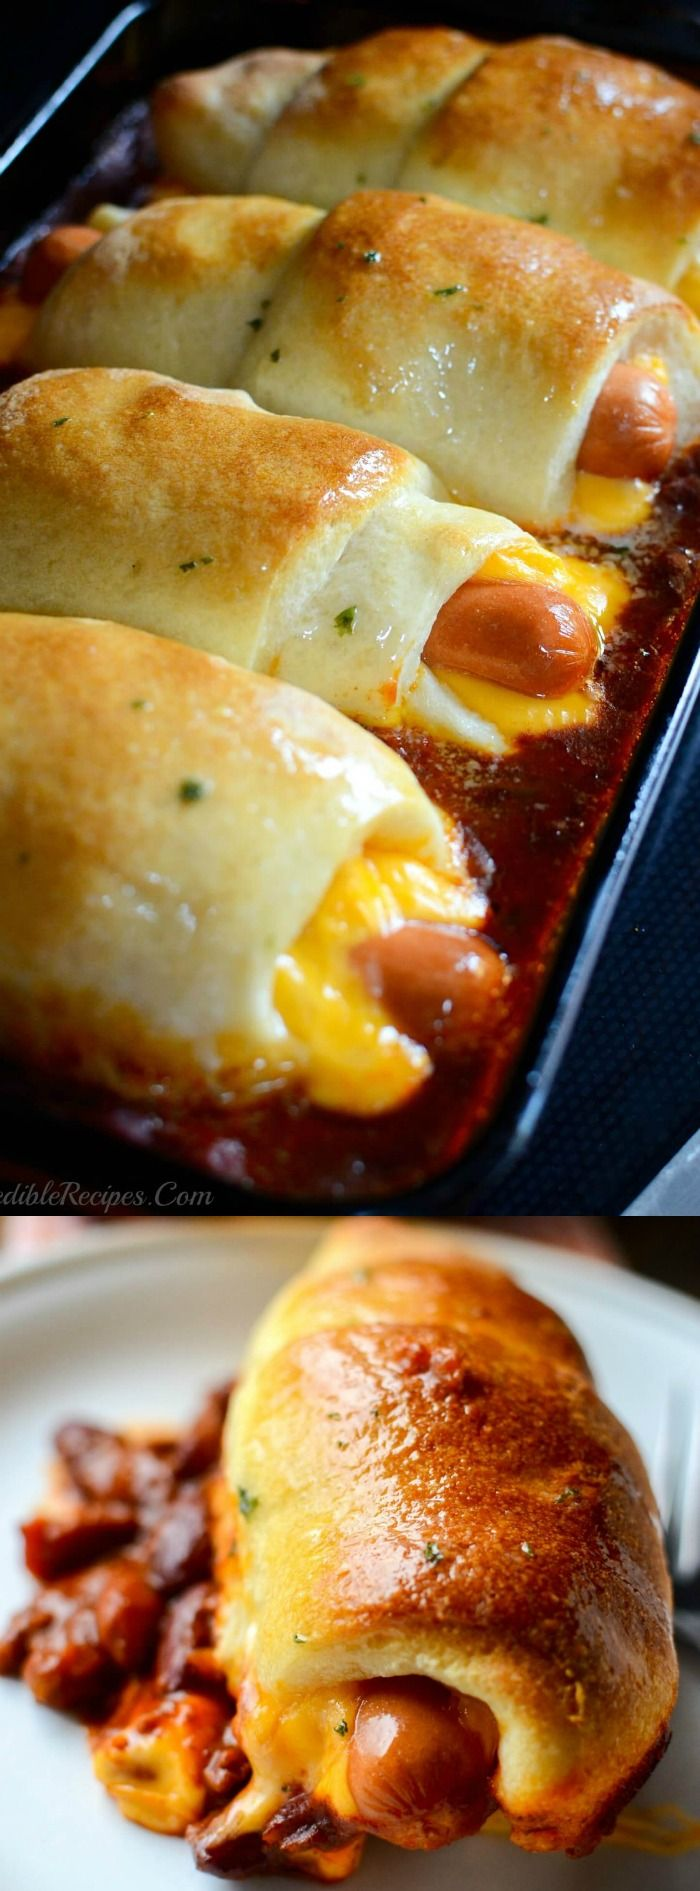 If you need an easy, cheesy, budget friendly dinner recipe then you are really going to LOVE this Chili Cheese Dog Bake from My Incredible Recipes!